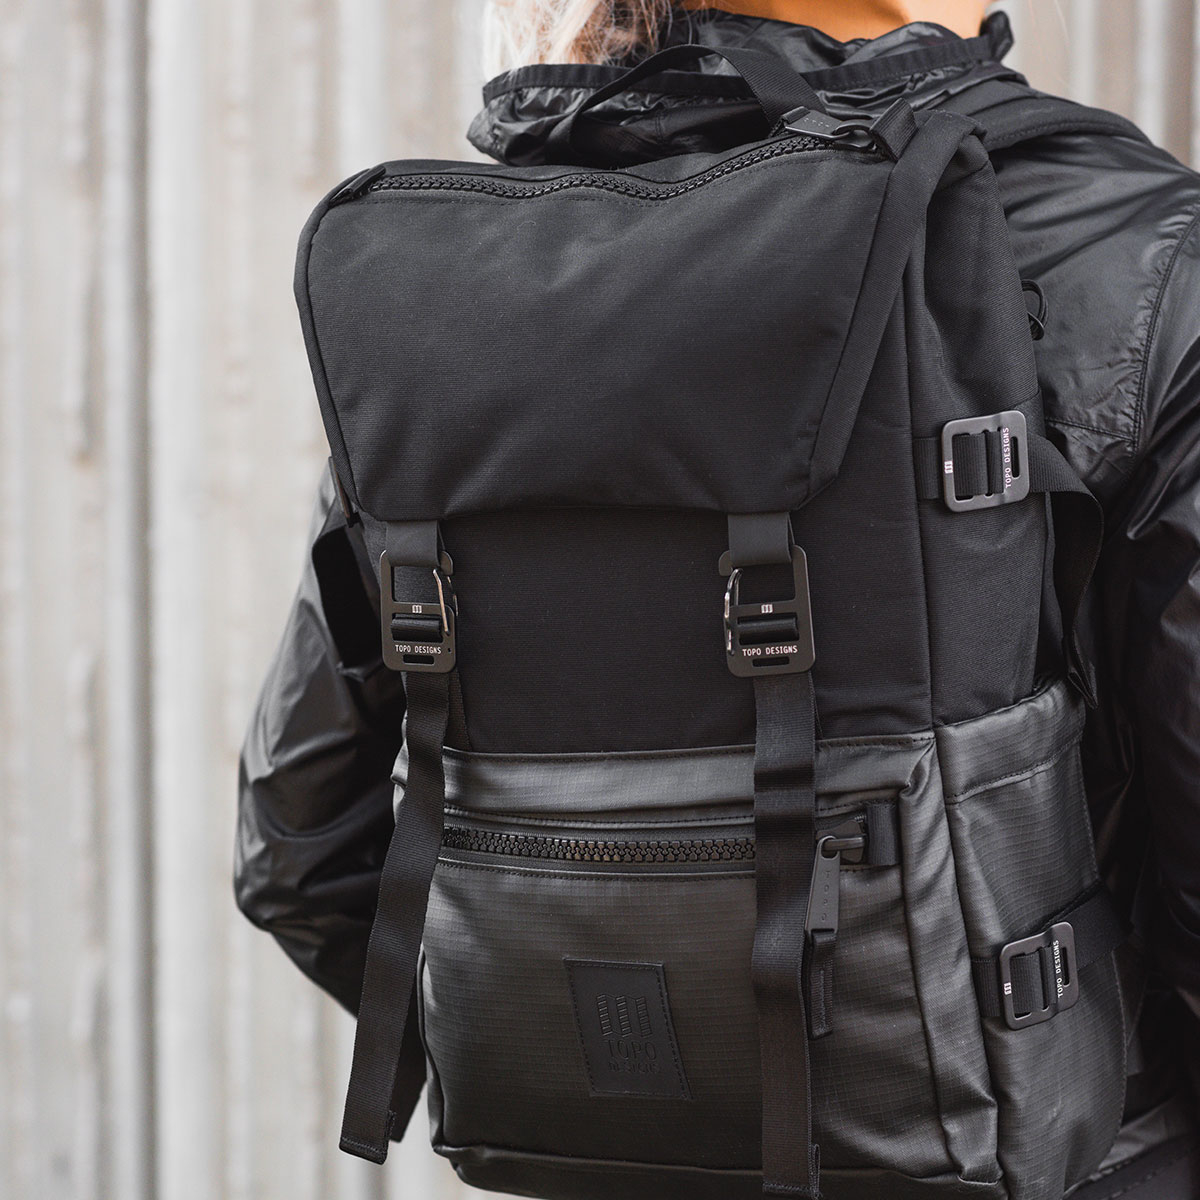 Topo Designs Rover Pack Premium Black, backpack built to work wherever you do